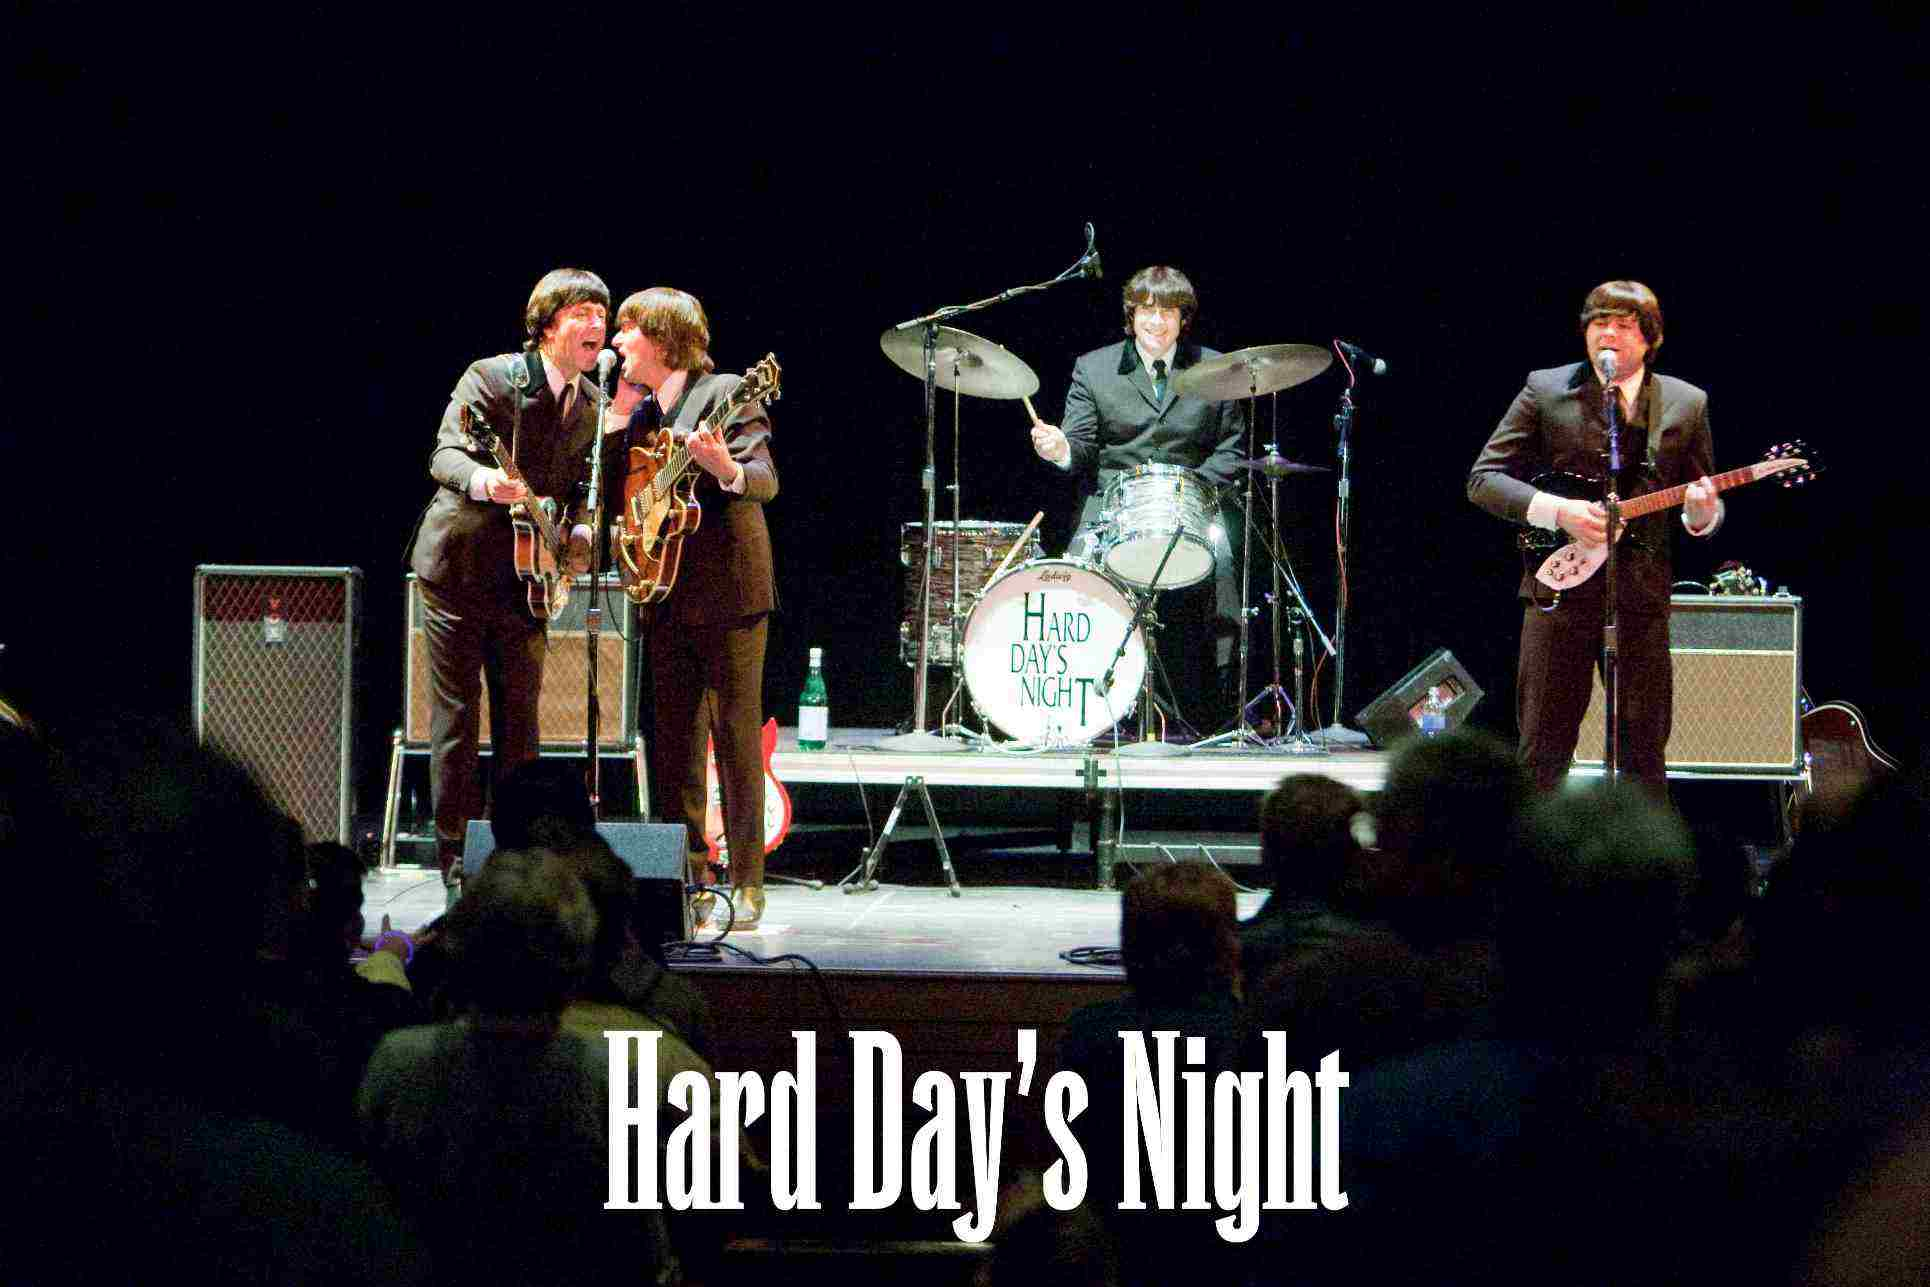 Hard Day's Night - The Beatles Tribute